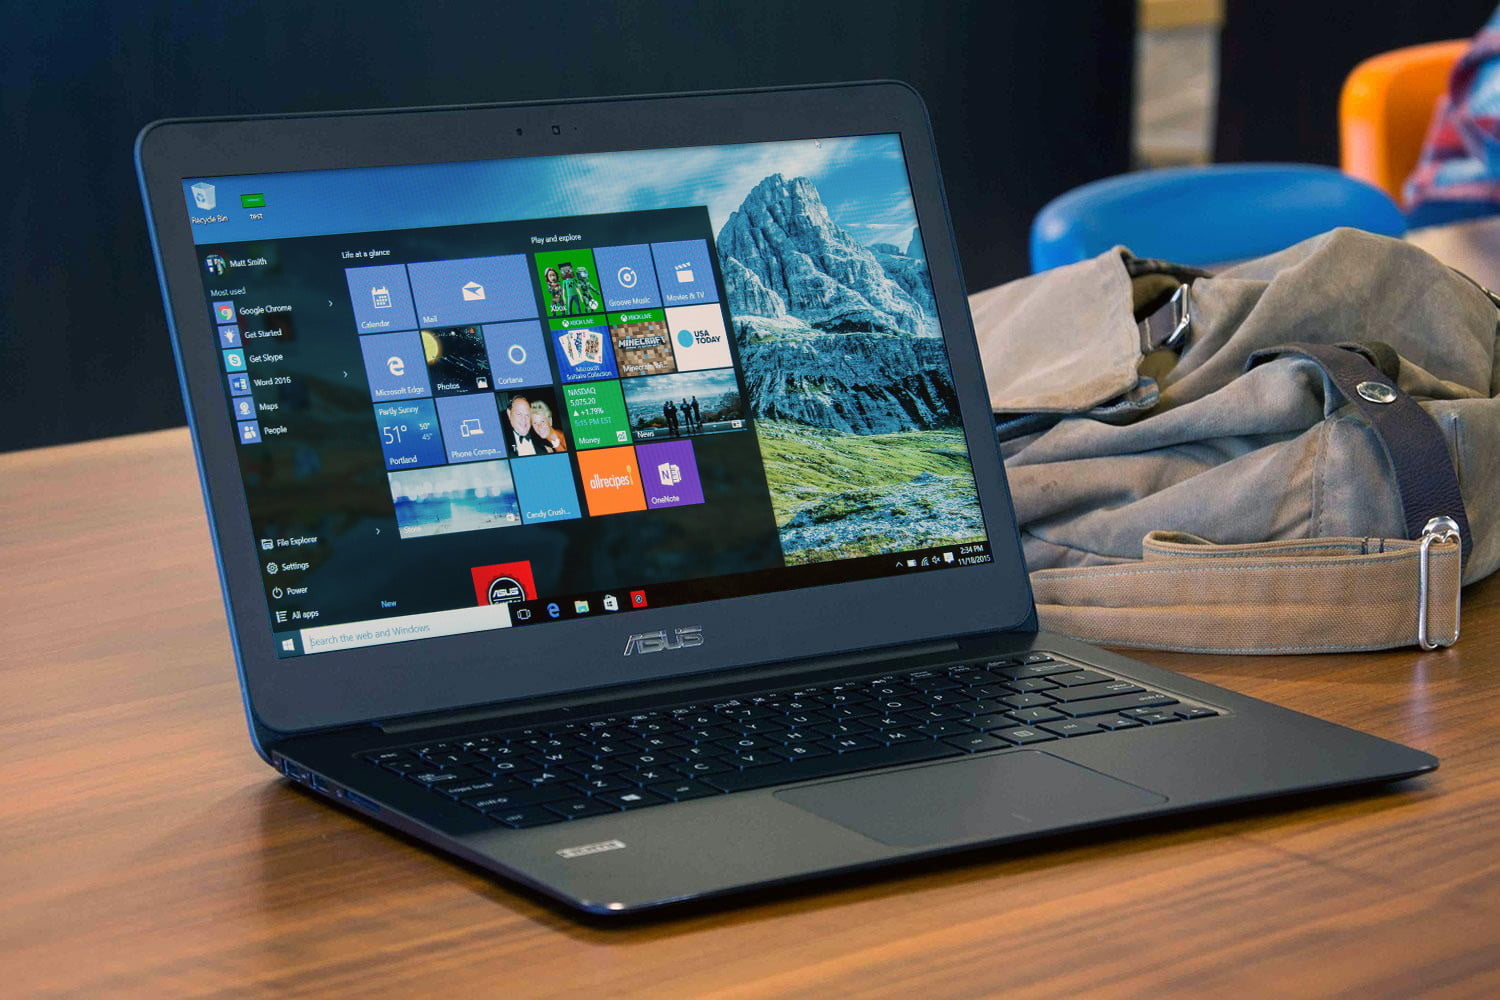 How to Change Your Windows 10 Login Screen Background Wallpaper 1500x1000